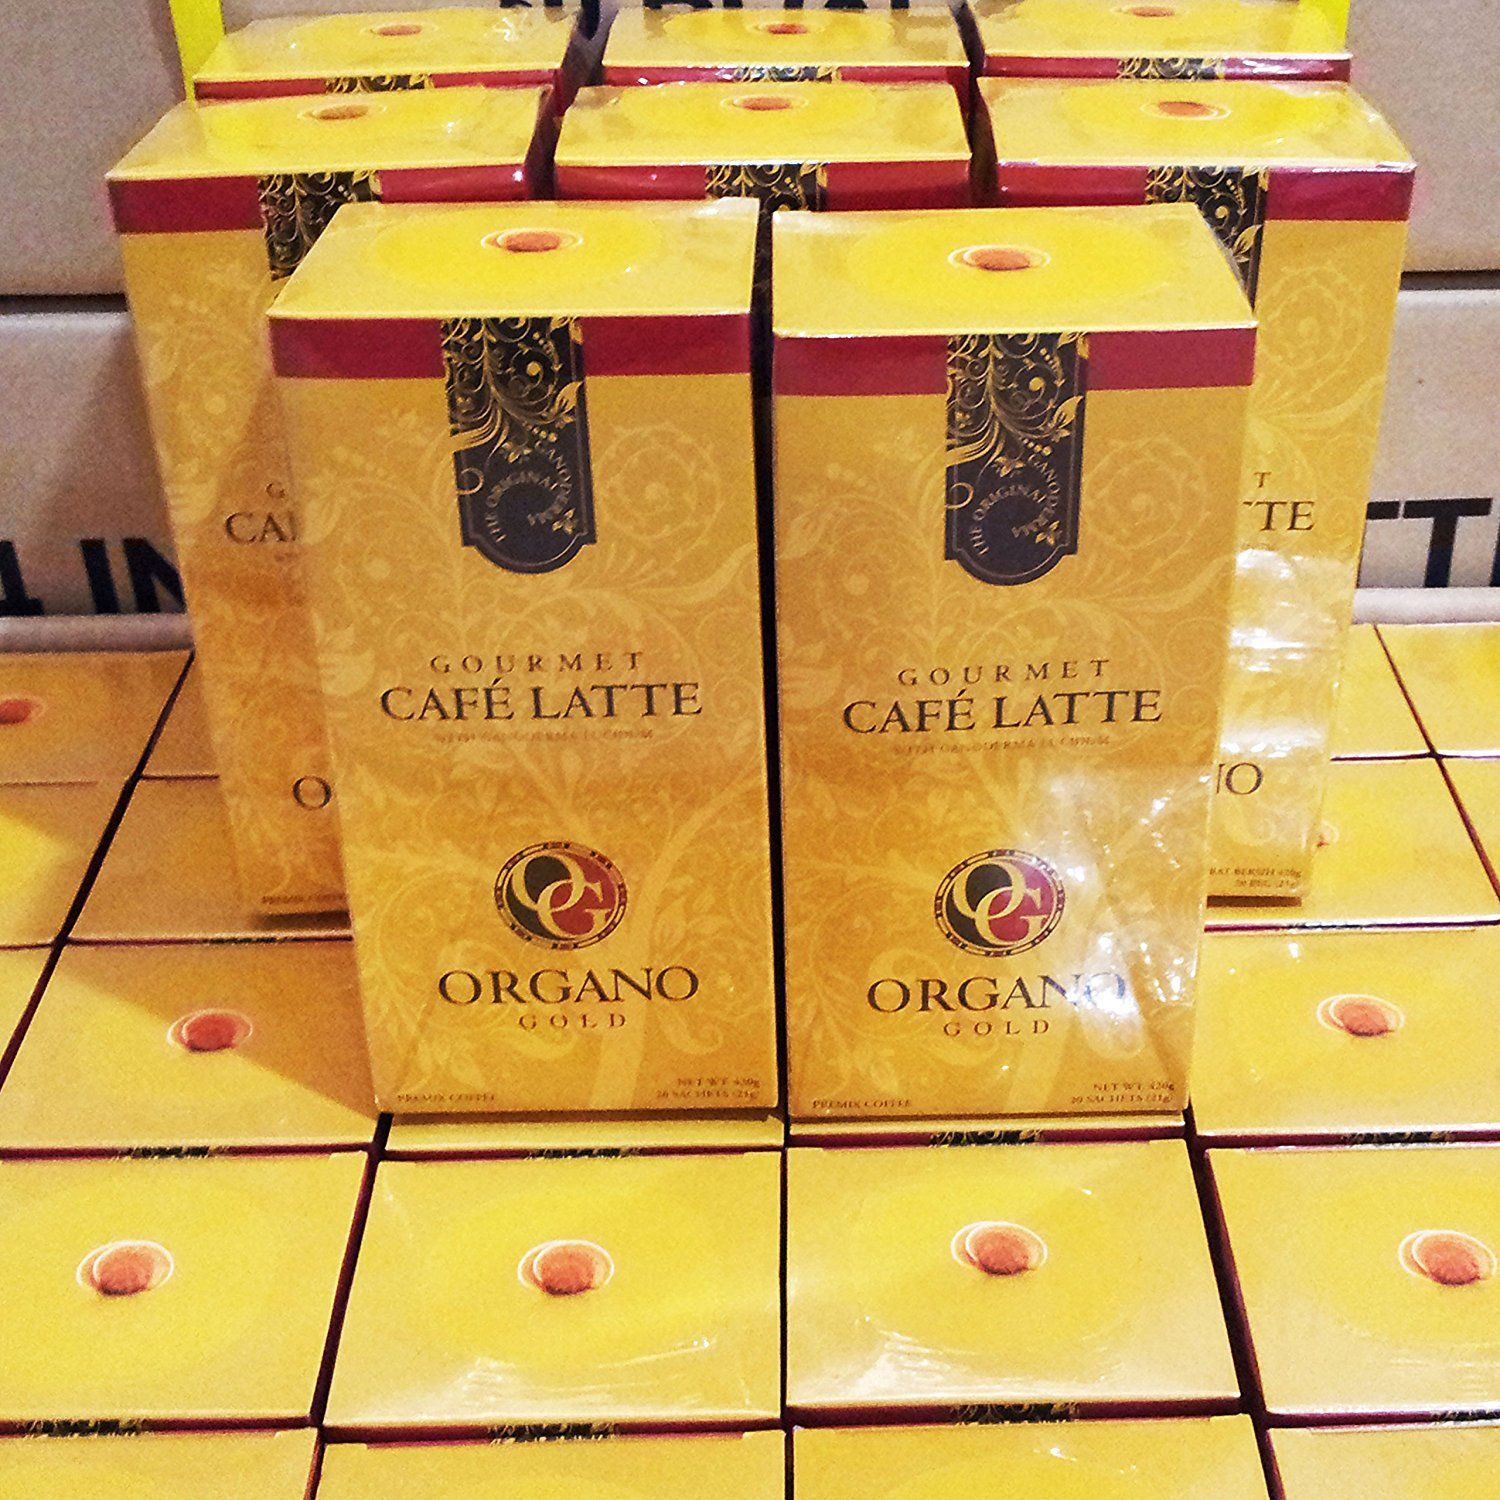 6 Boxes Organo Gold Gourmet Cafe Latte With 100% Organic